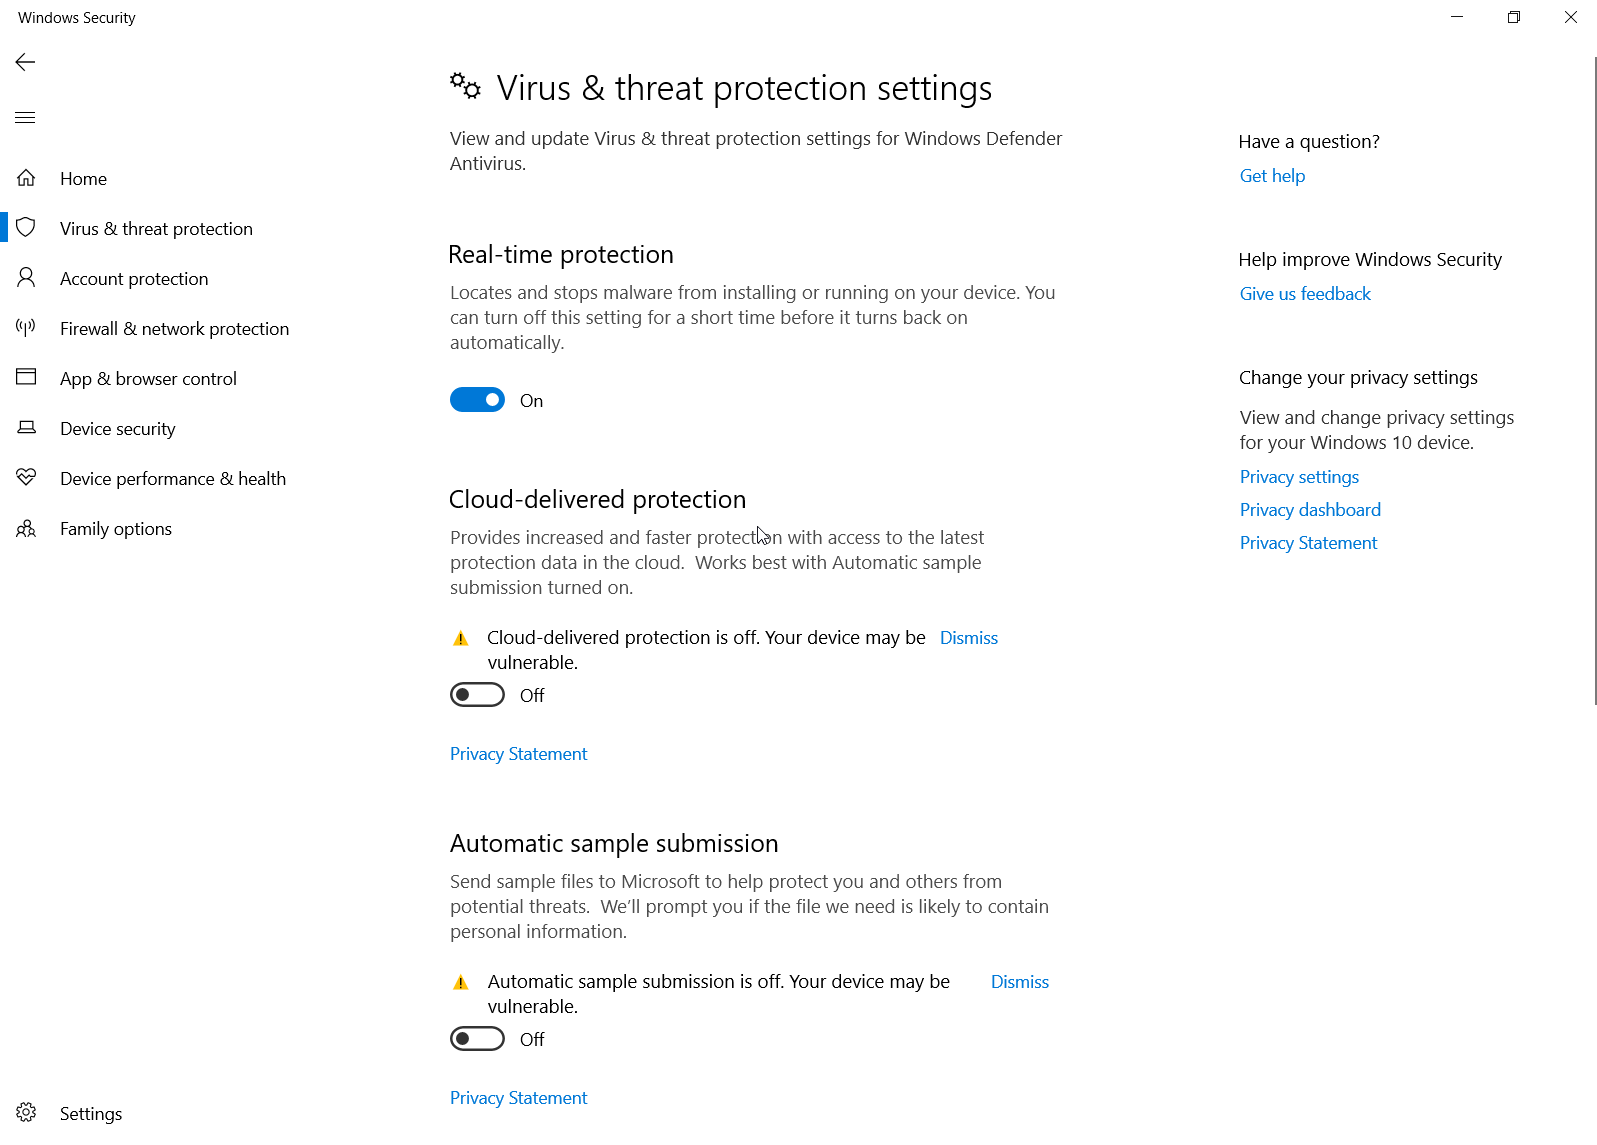 Windows Defender lab settings